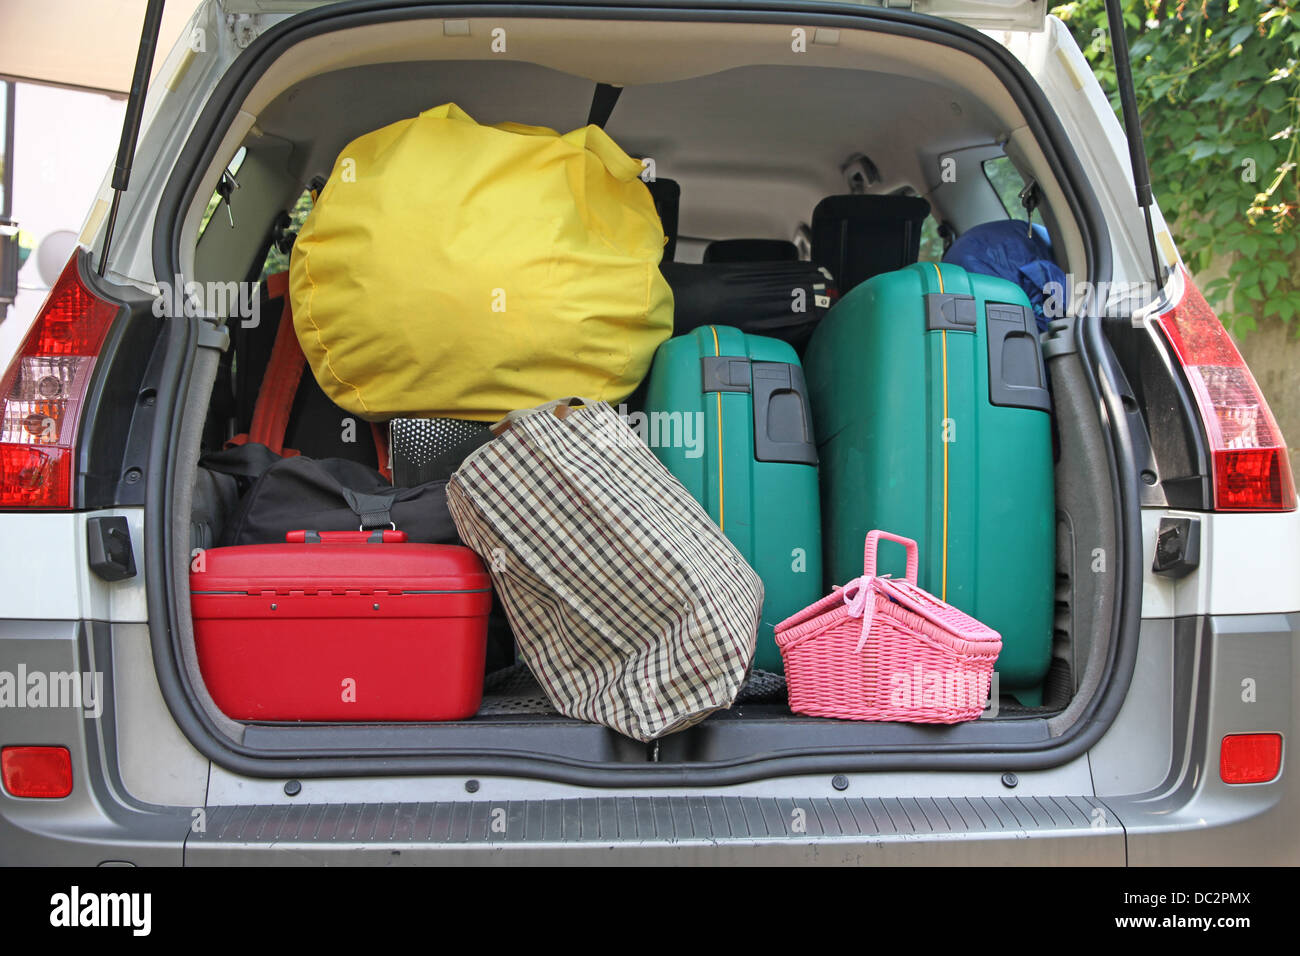 two green suitcases and many bags in the trunk of the car ready to depart for the holidays - Stock Image